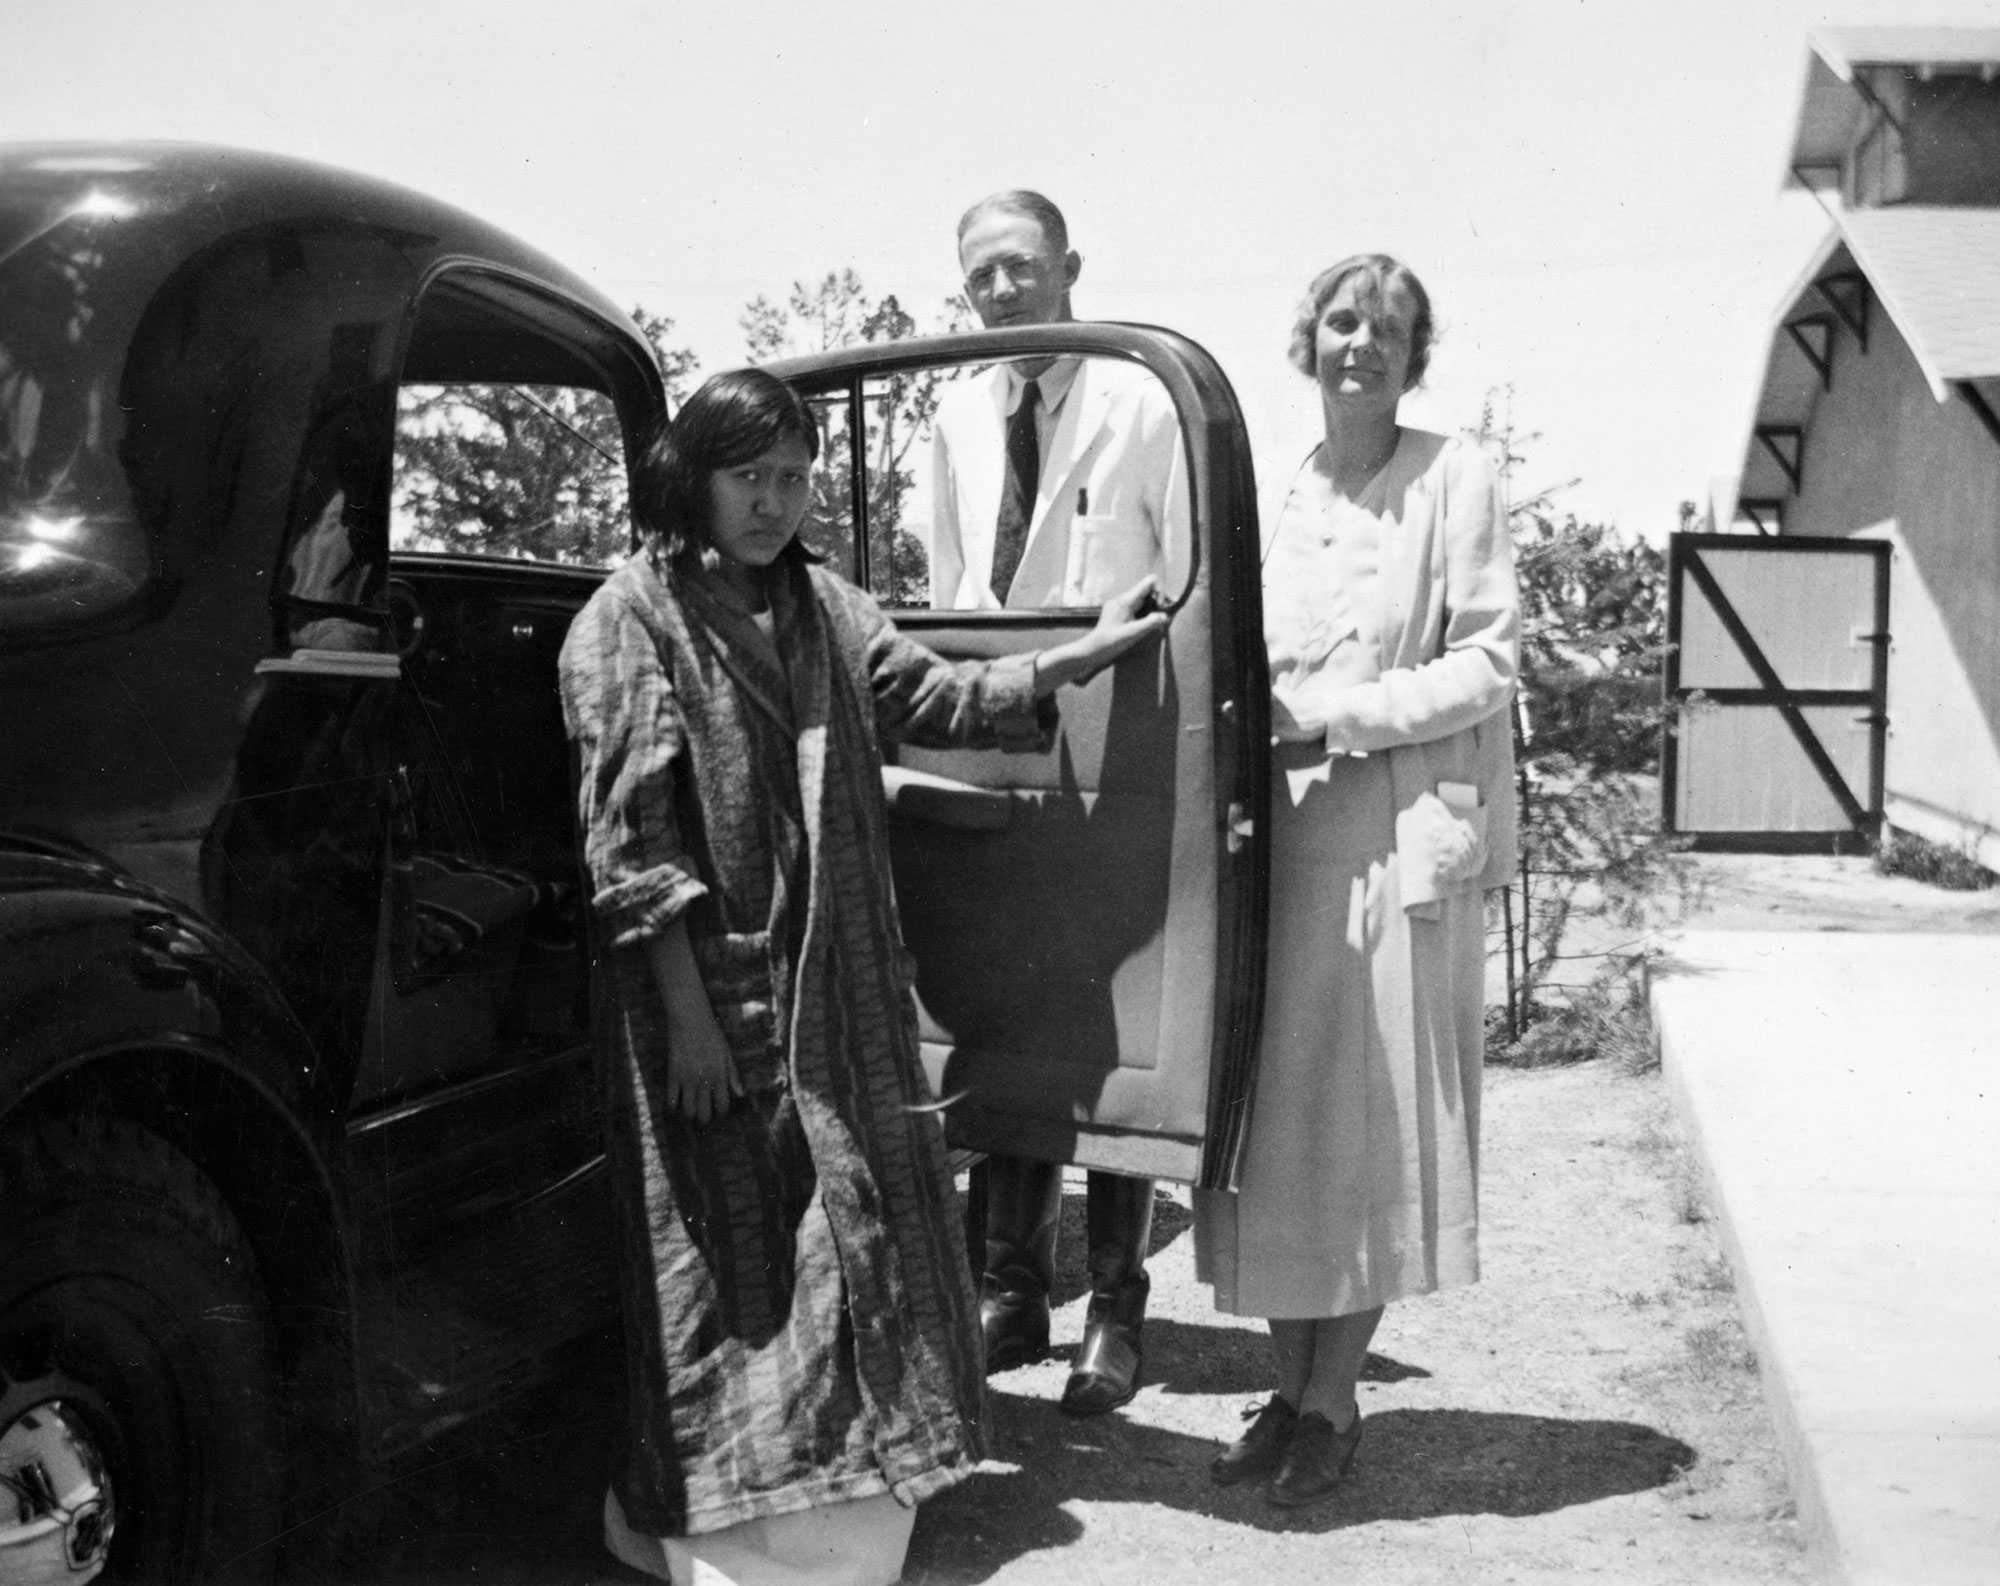 rural medical personnel at the Ganado Mission in Arizona in 1938; Photo courtesy Arizona State Library, Archives and Public Records, History and Archives division, Phoenix, # 90-0101